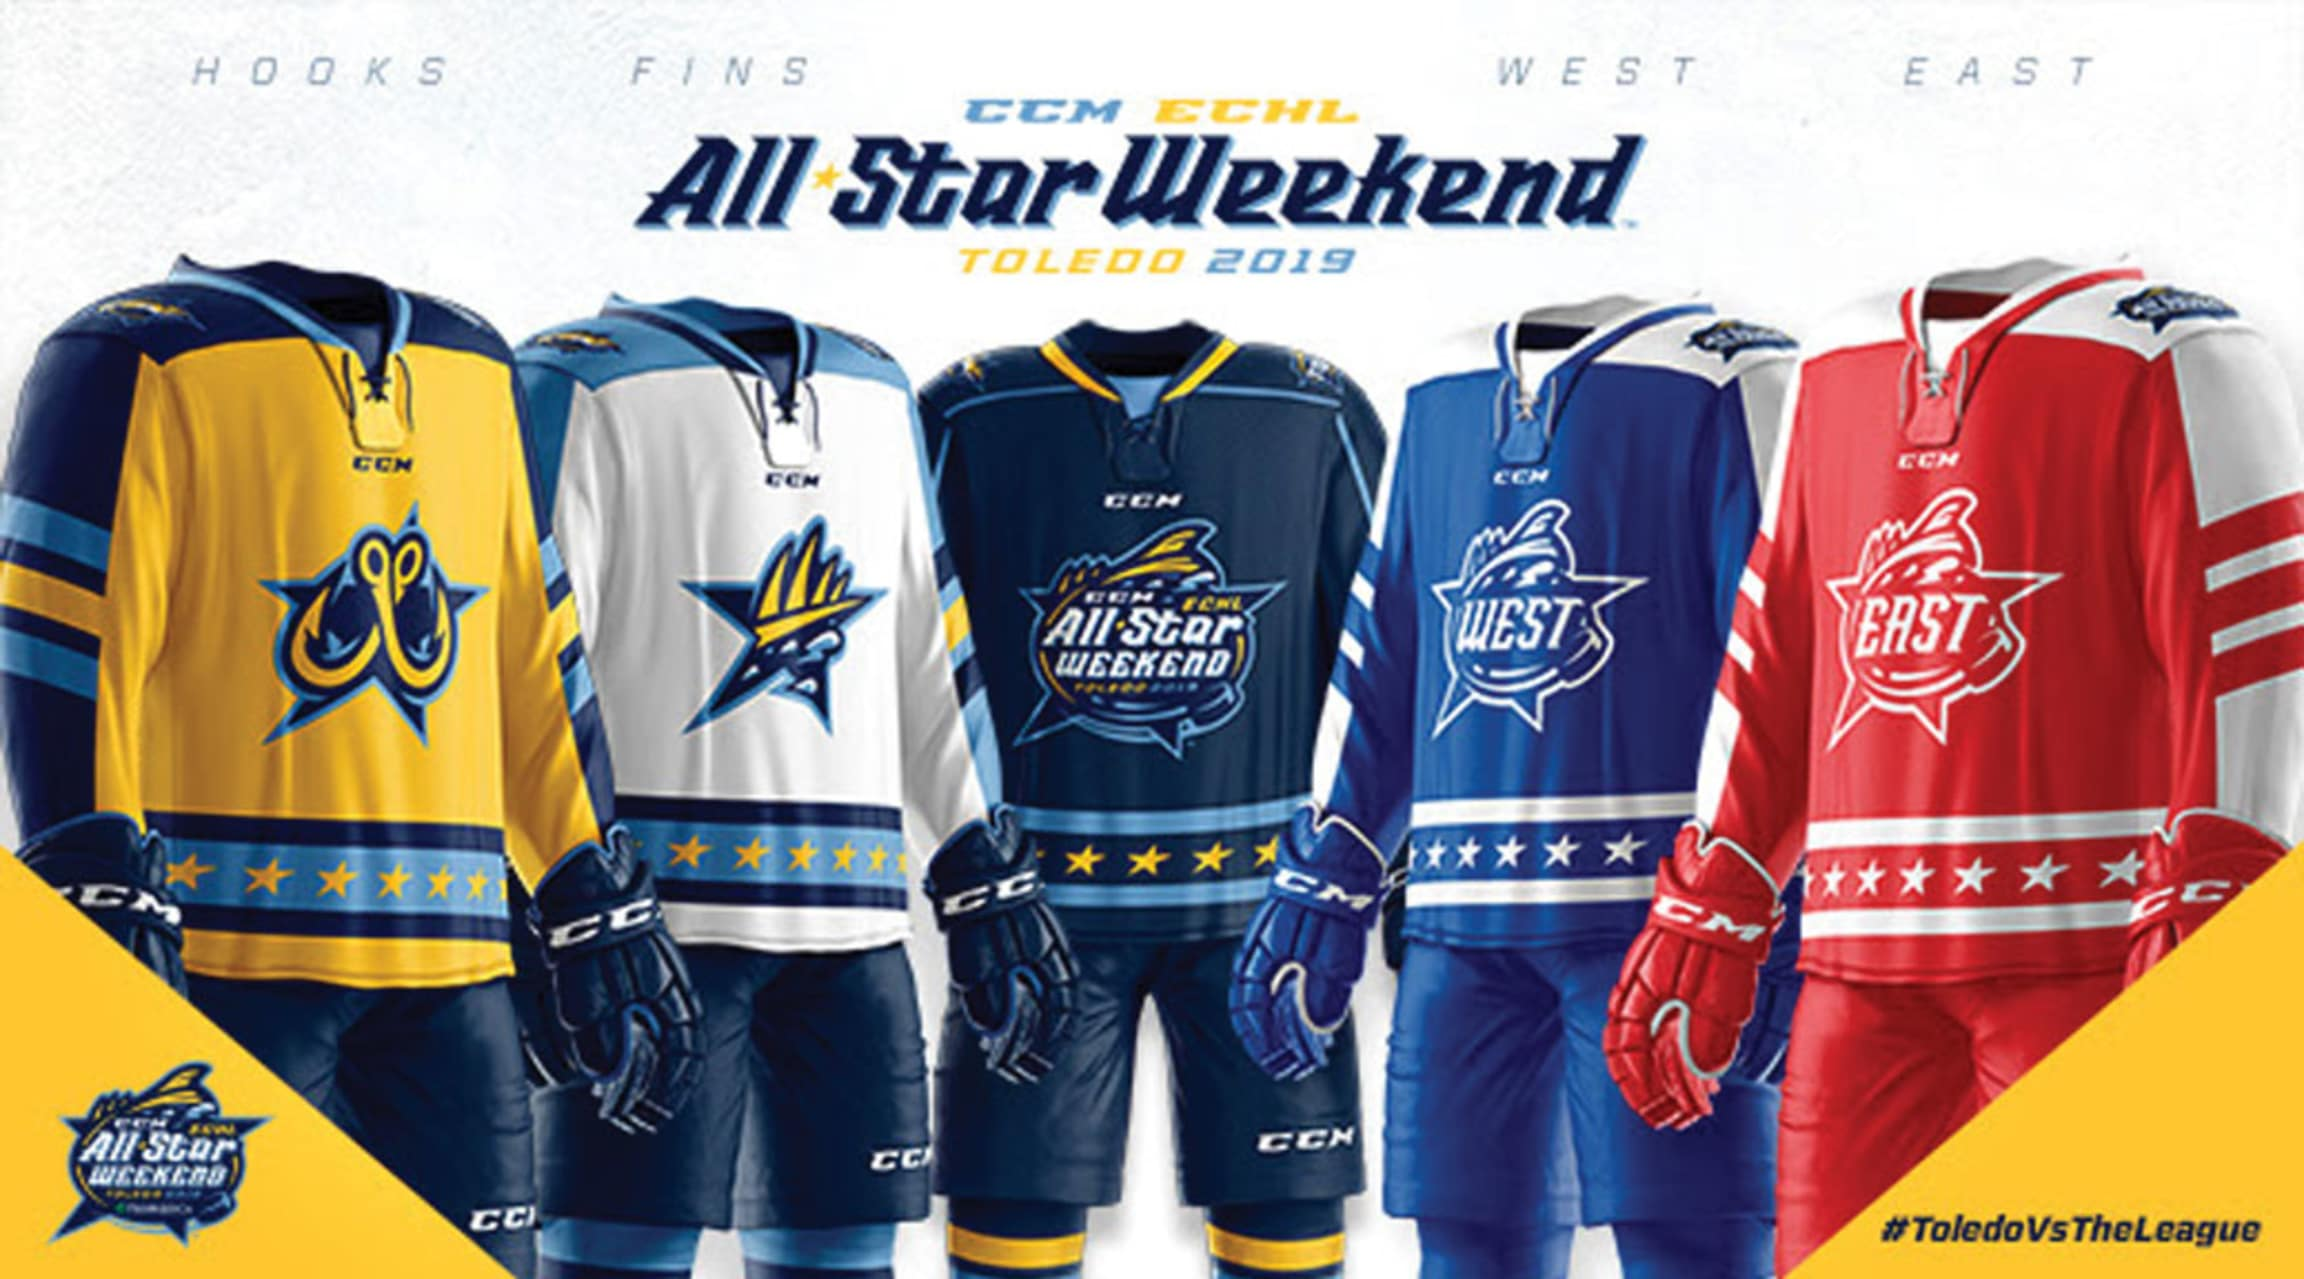 c304c22162e Jerseys unveiled for 2019 CCM/ECHL All-Star Classic